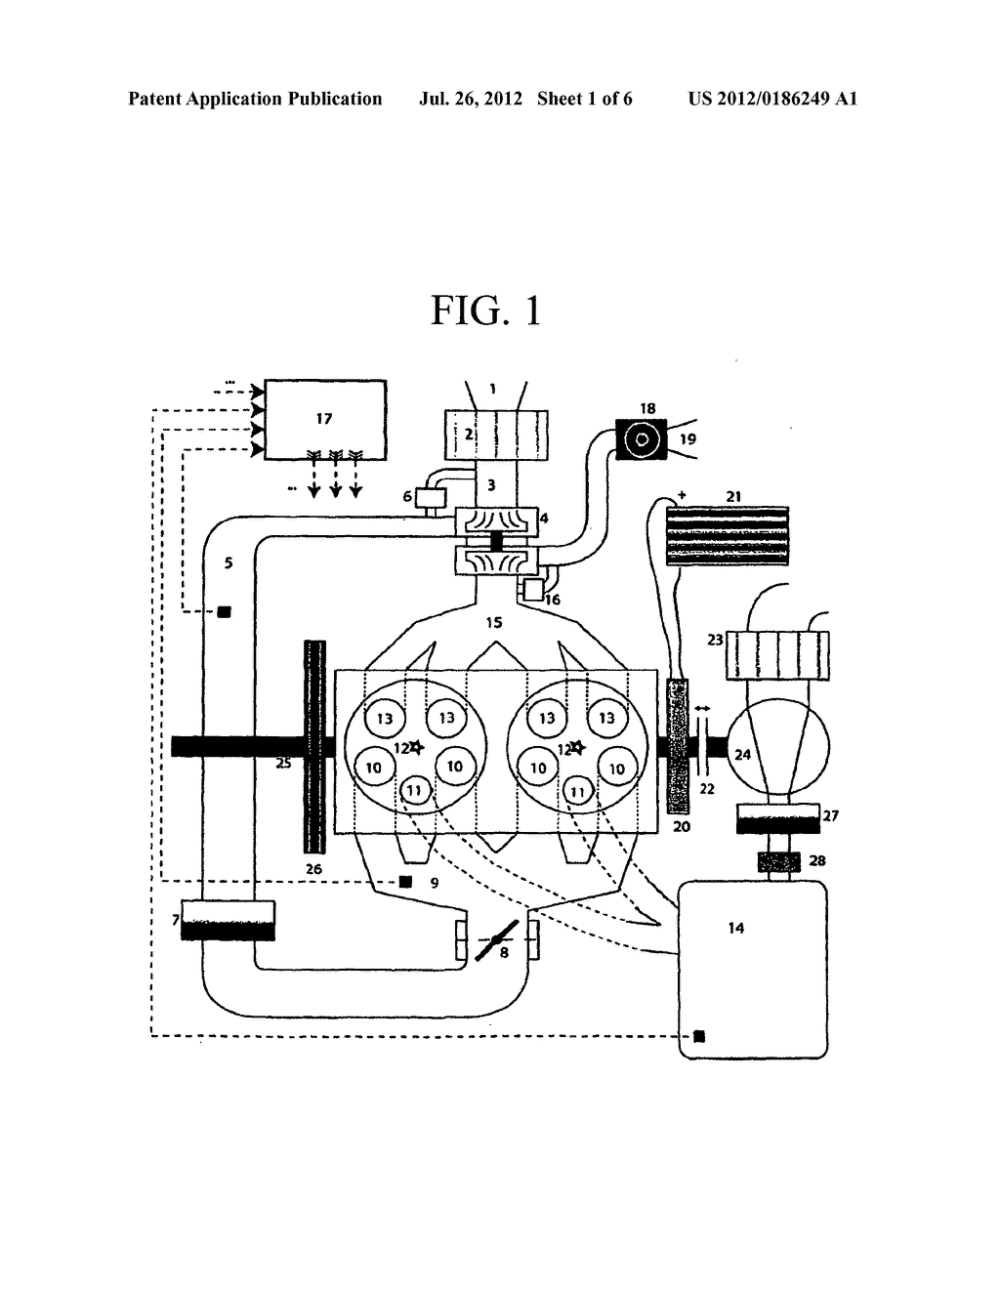 medium resolution of turbocharged reciprocating piston engine having a connected pressure tank for bridging turbo lag and method for operating said engine diagram schematic